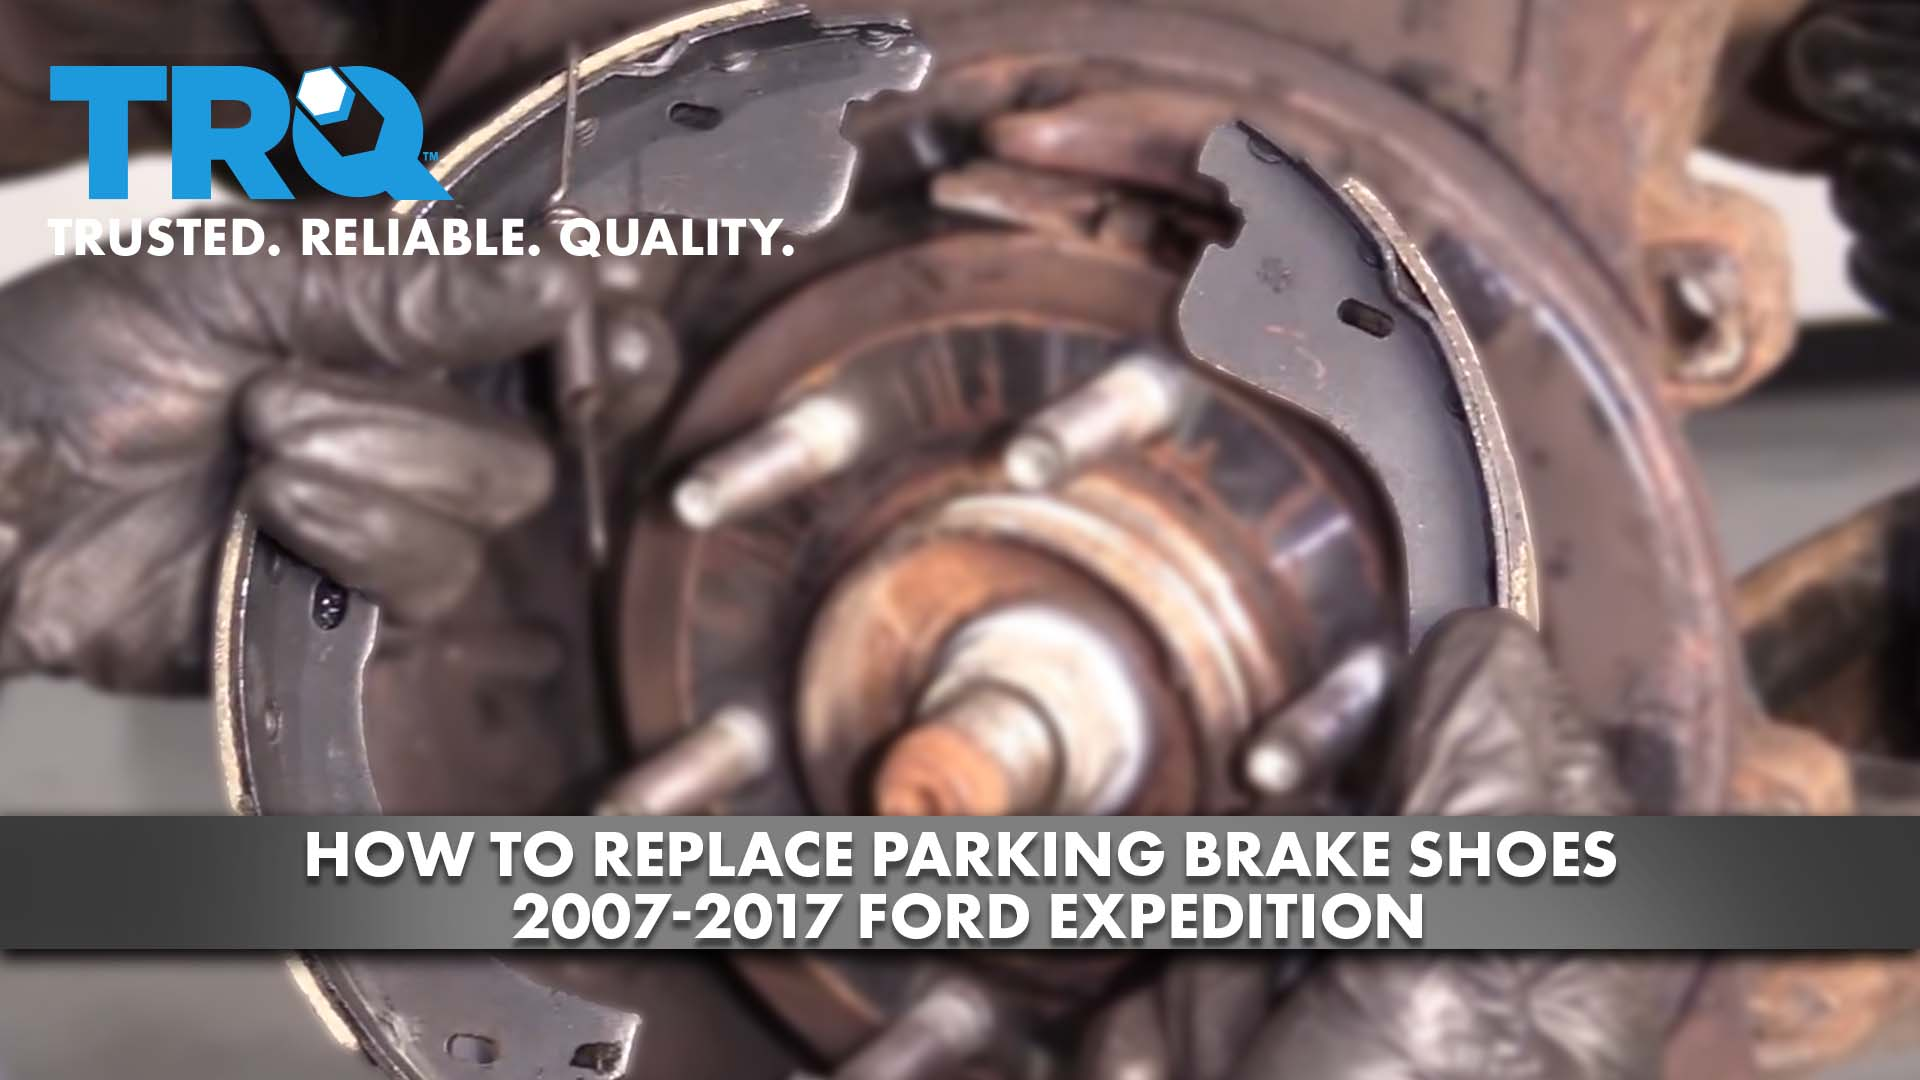 How to Replace Parking Brake Shoes 2007-17 Ford Expedition